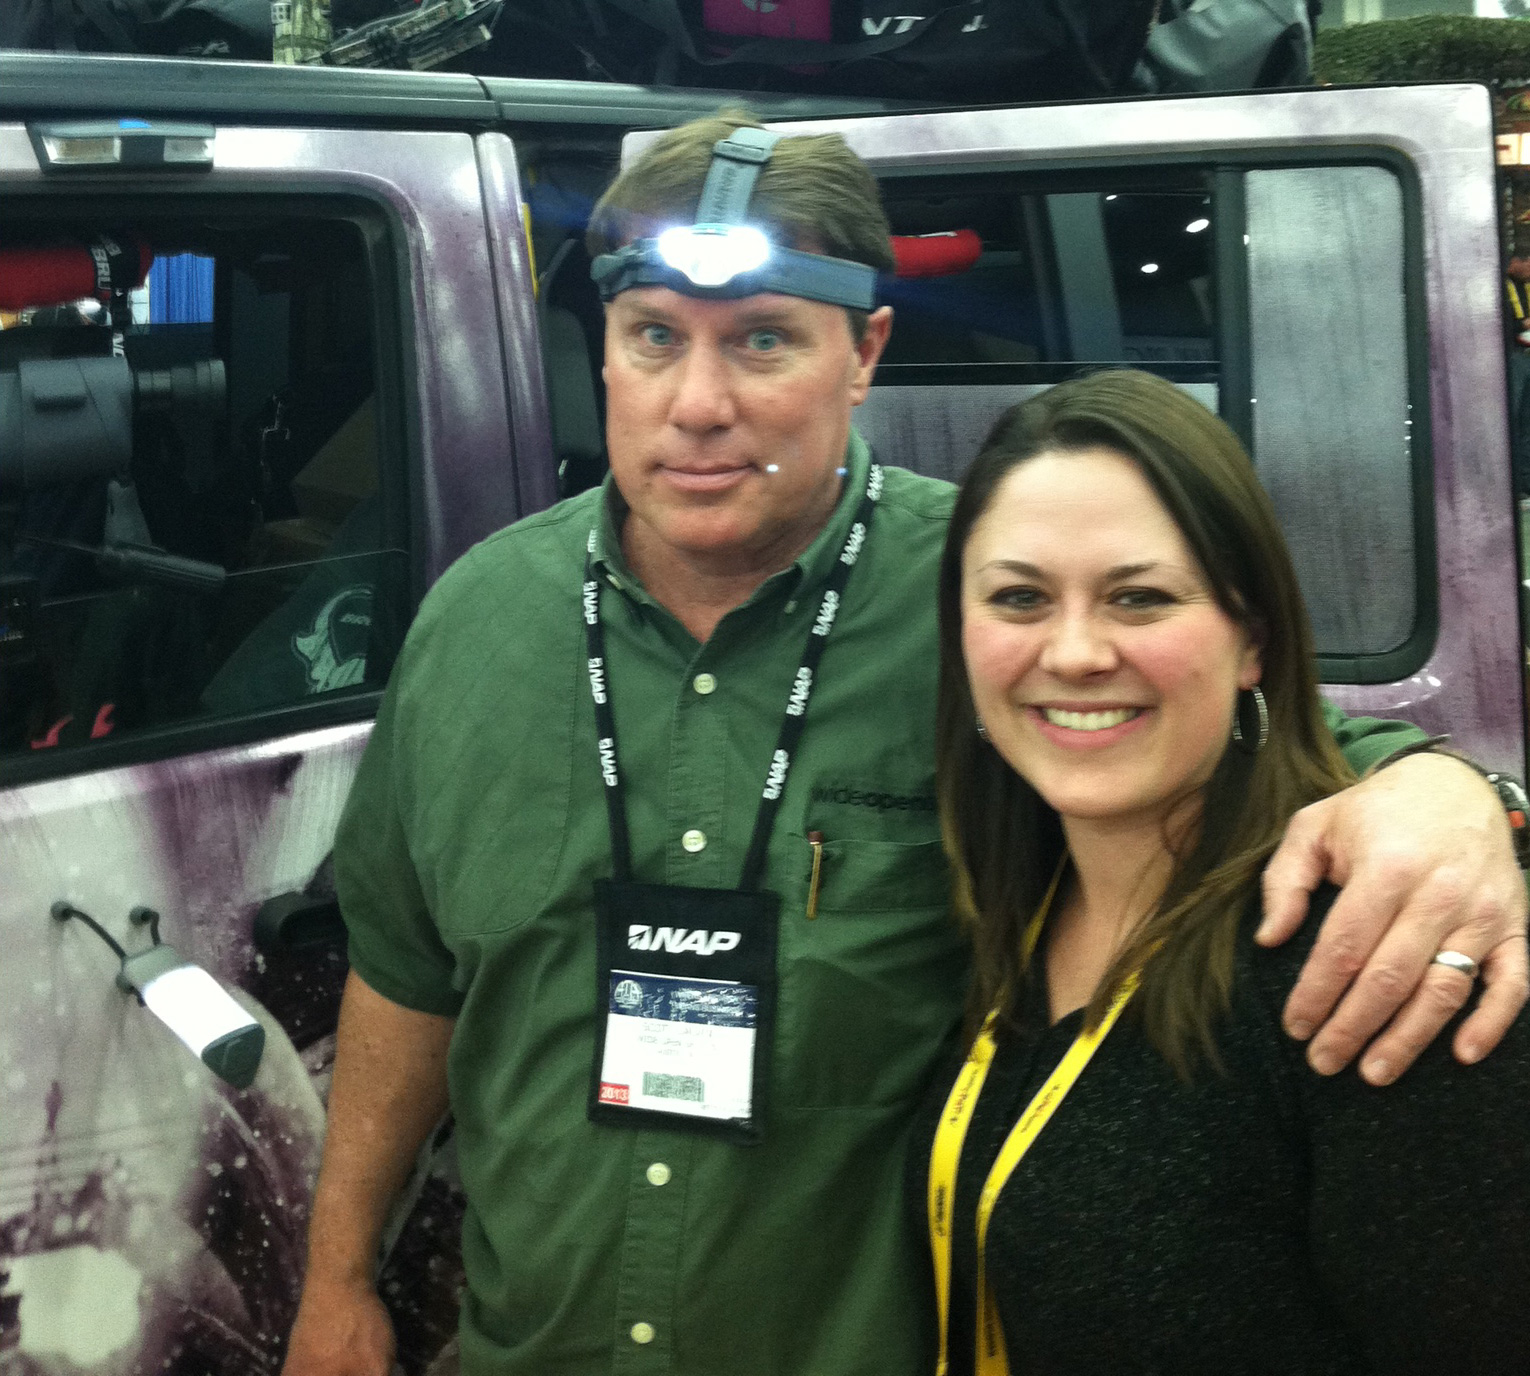 Entertainment Scott and Jess Buss of Brunton Hunting. Scott is trying out the Glacier 320 Headlamp